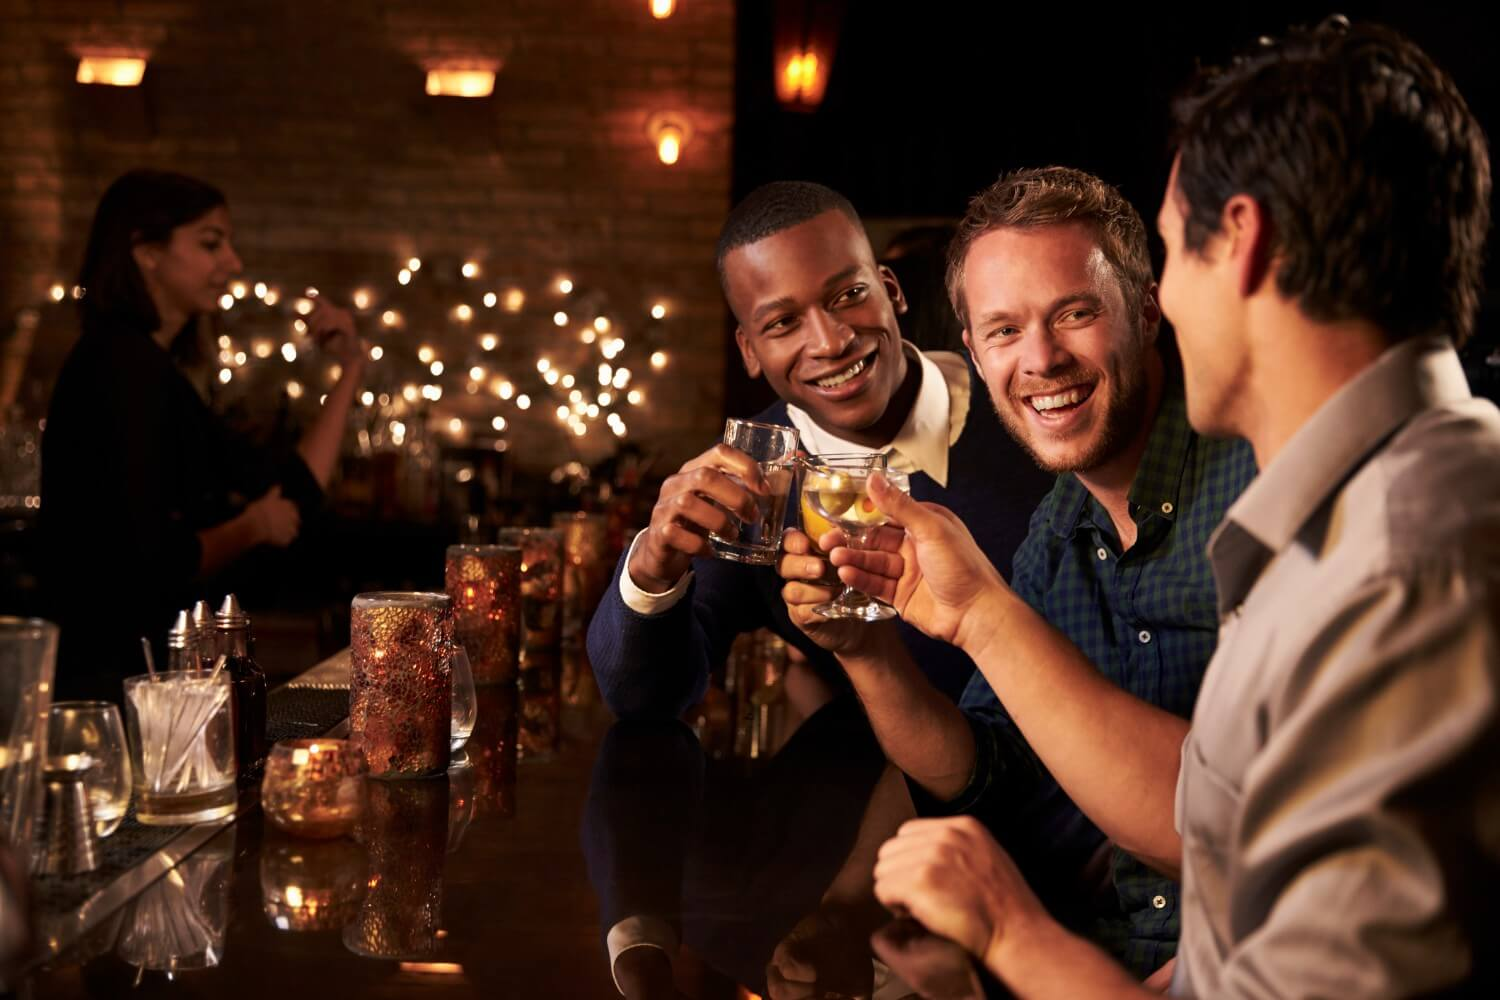 People drinking at a bar